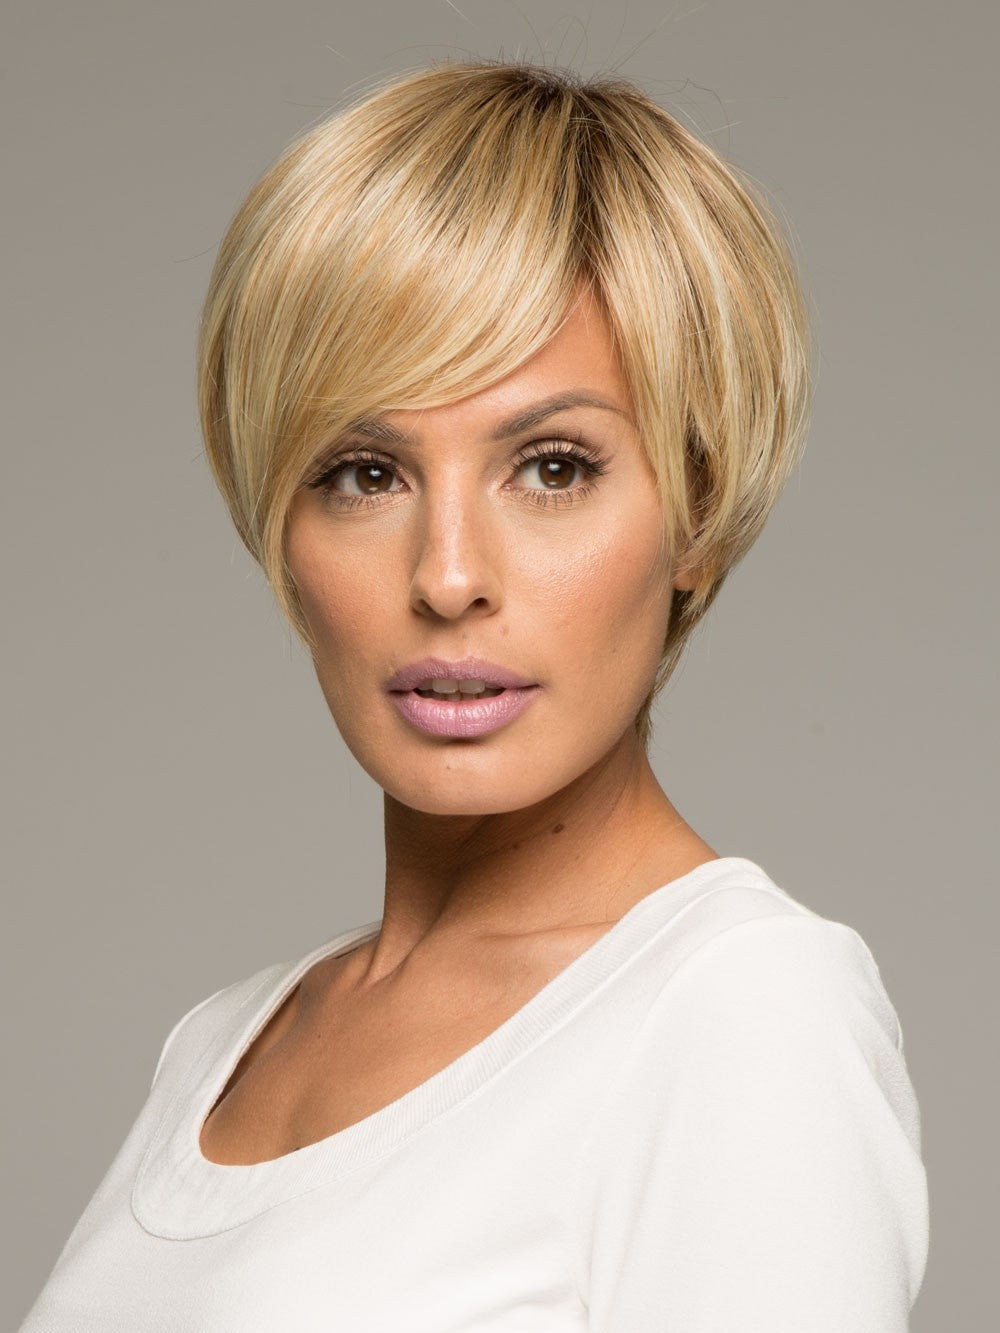 MODERN LOVE by Raquel Welch in SS14/88 SHADED GOLDEN WHEAT | Dark Blonde Evenly Blended with Pale Blonde Highlights and Dark Roots